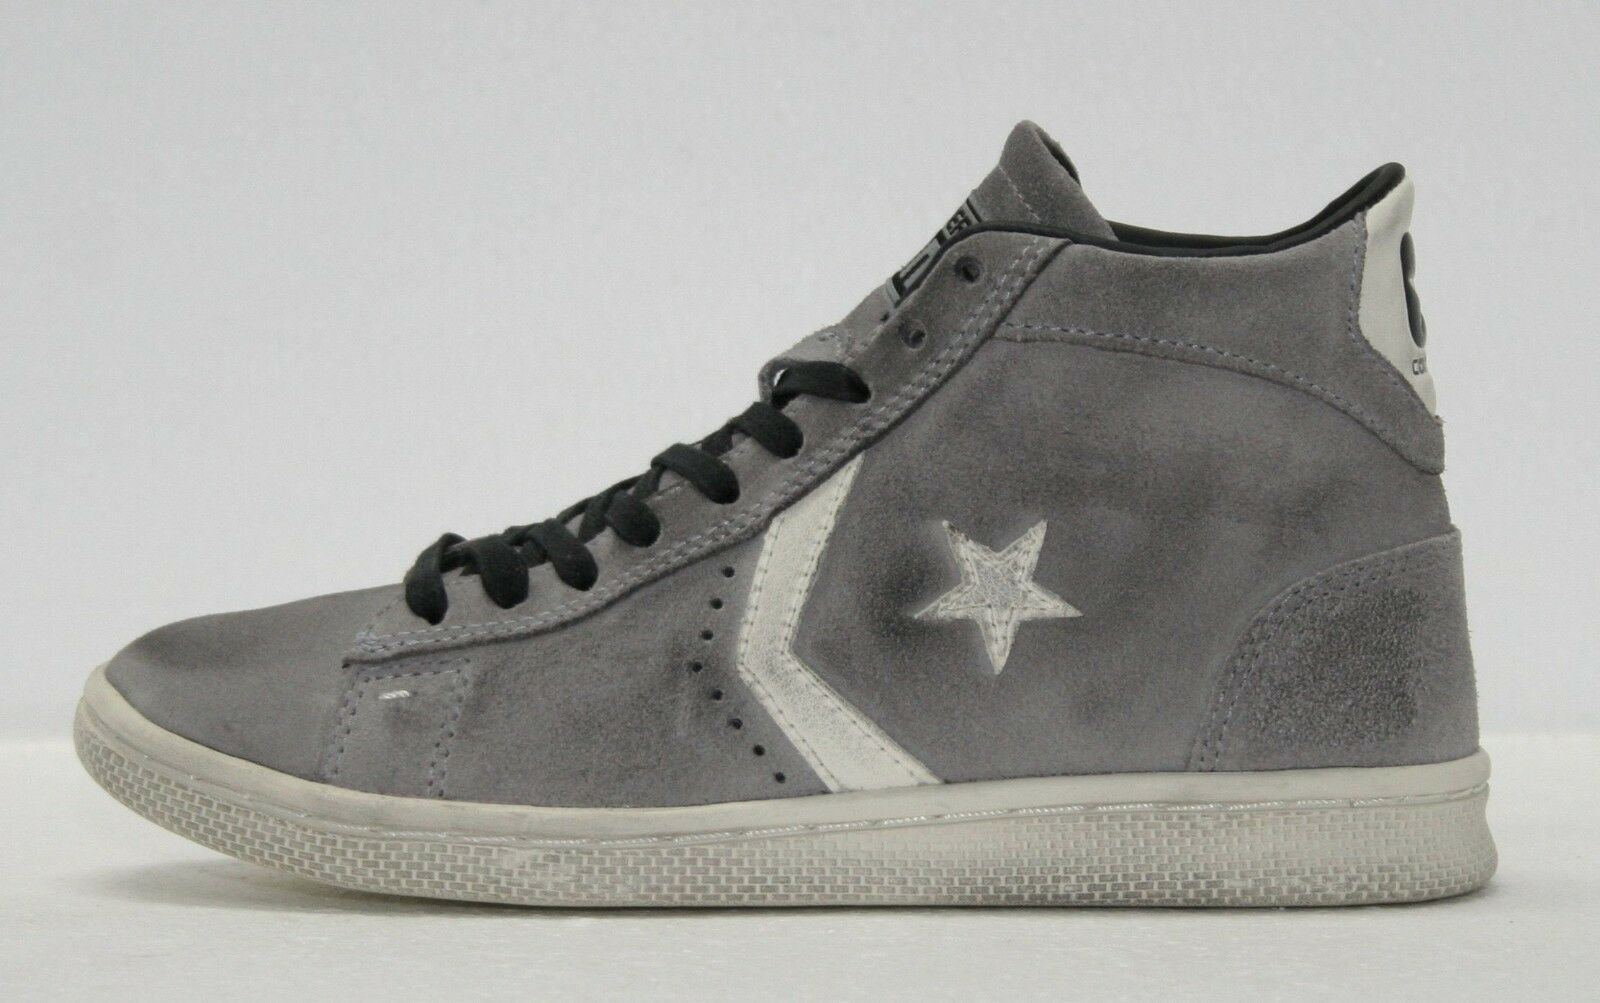 ALL STAR CONVERSE LTD PRO LEATHER MID SUEDE LTD NUOVO TG 36 37 38 39 40 41 42 44